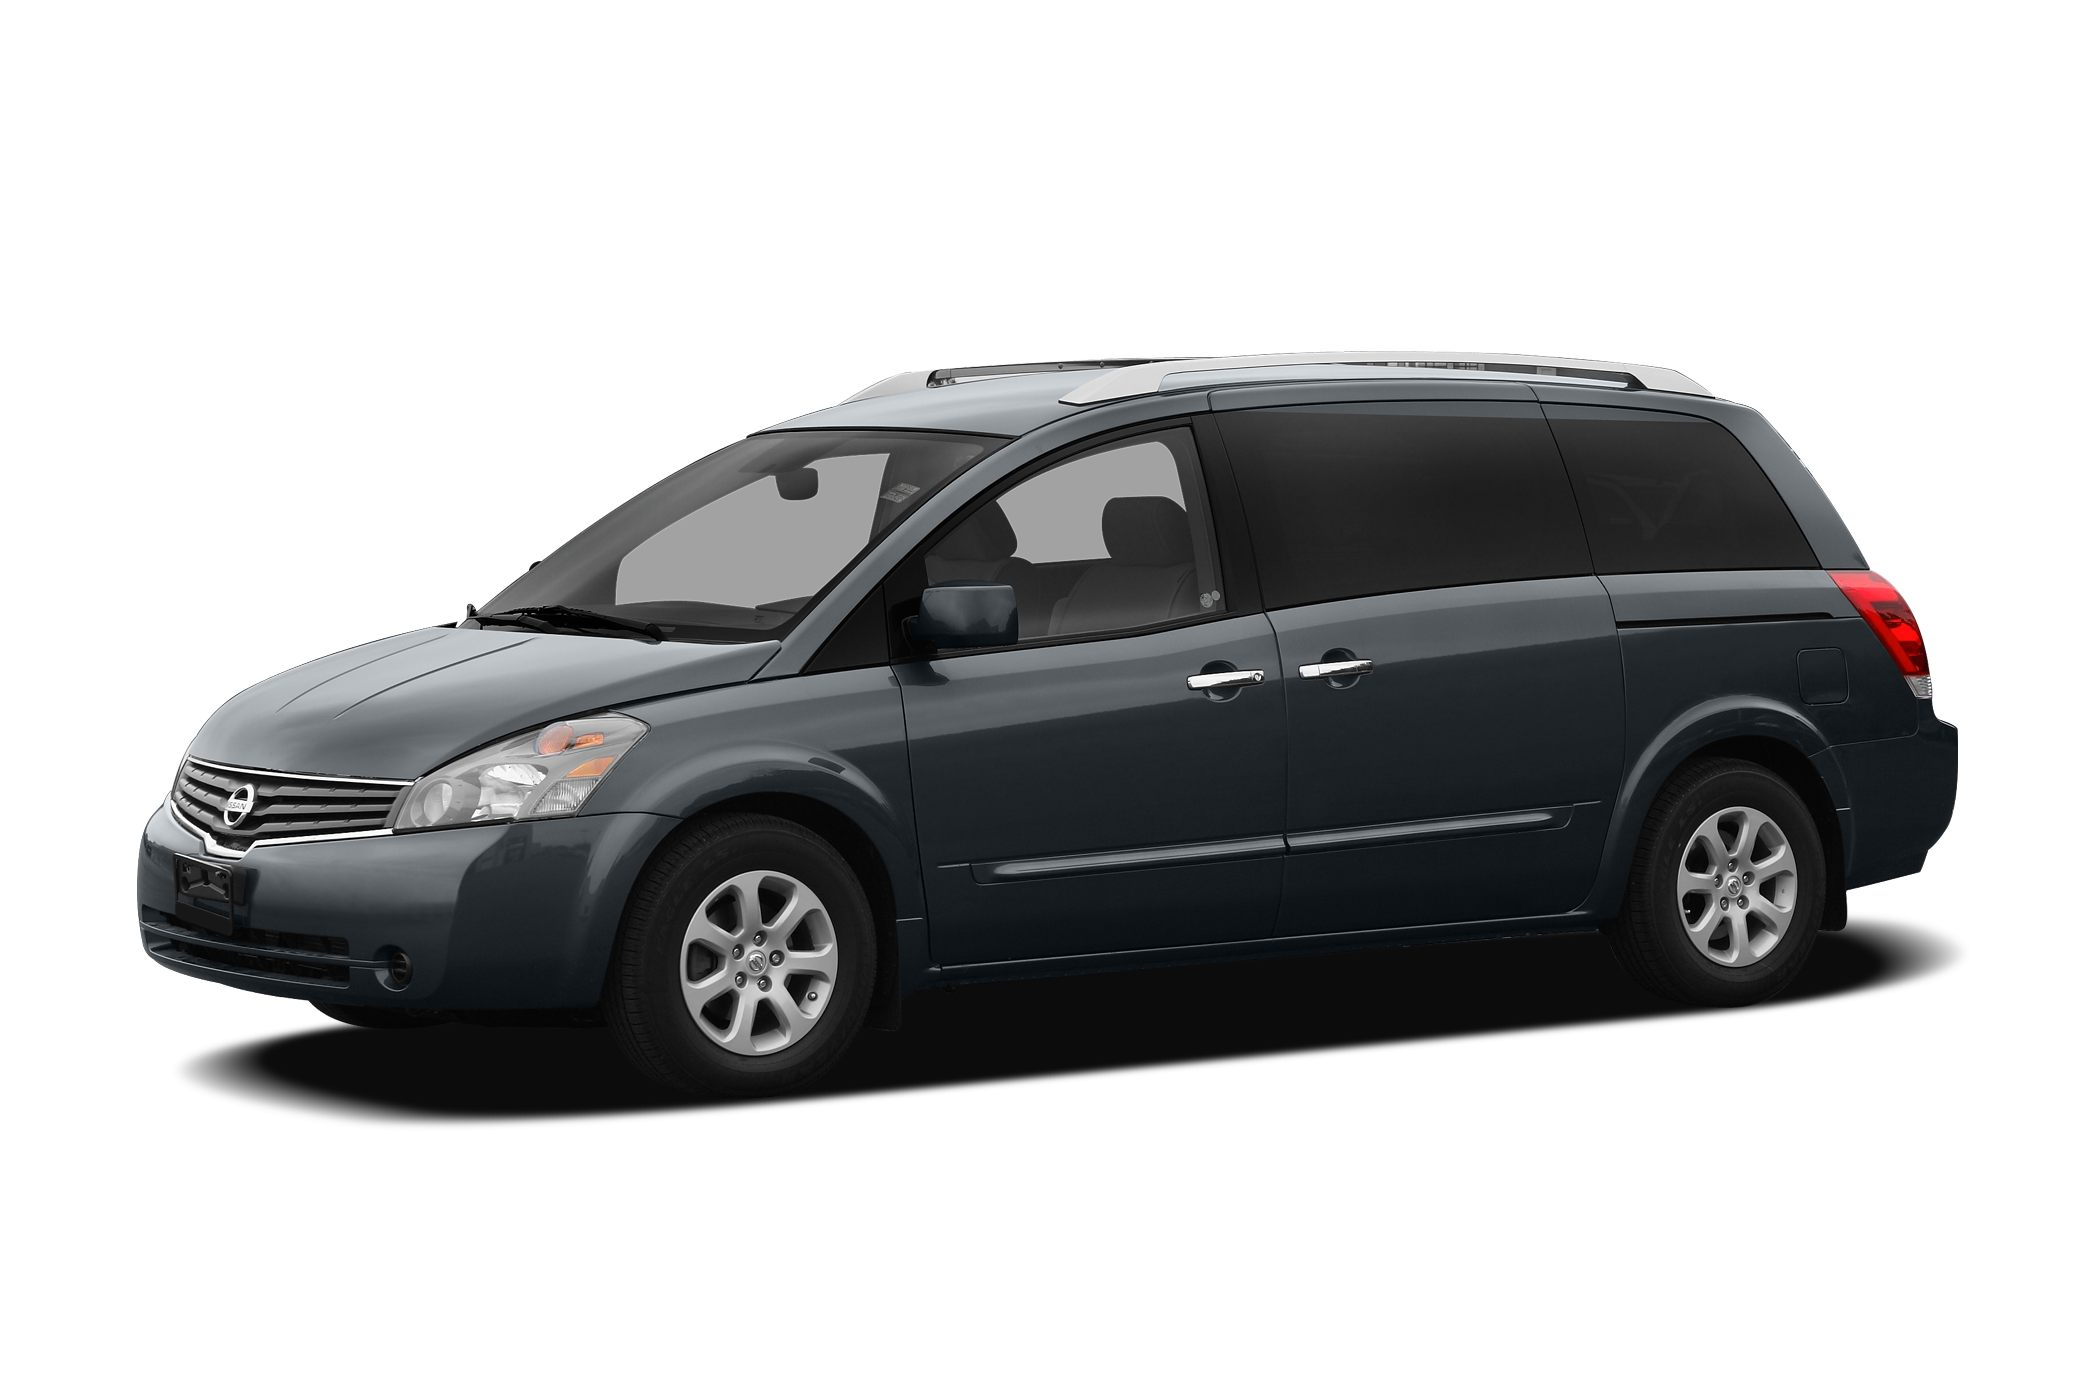 2007 Nissan Quest 3.5 Minivan for sale in Abington for $8,455 with 104,174 miles.